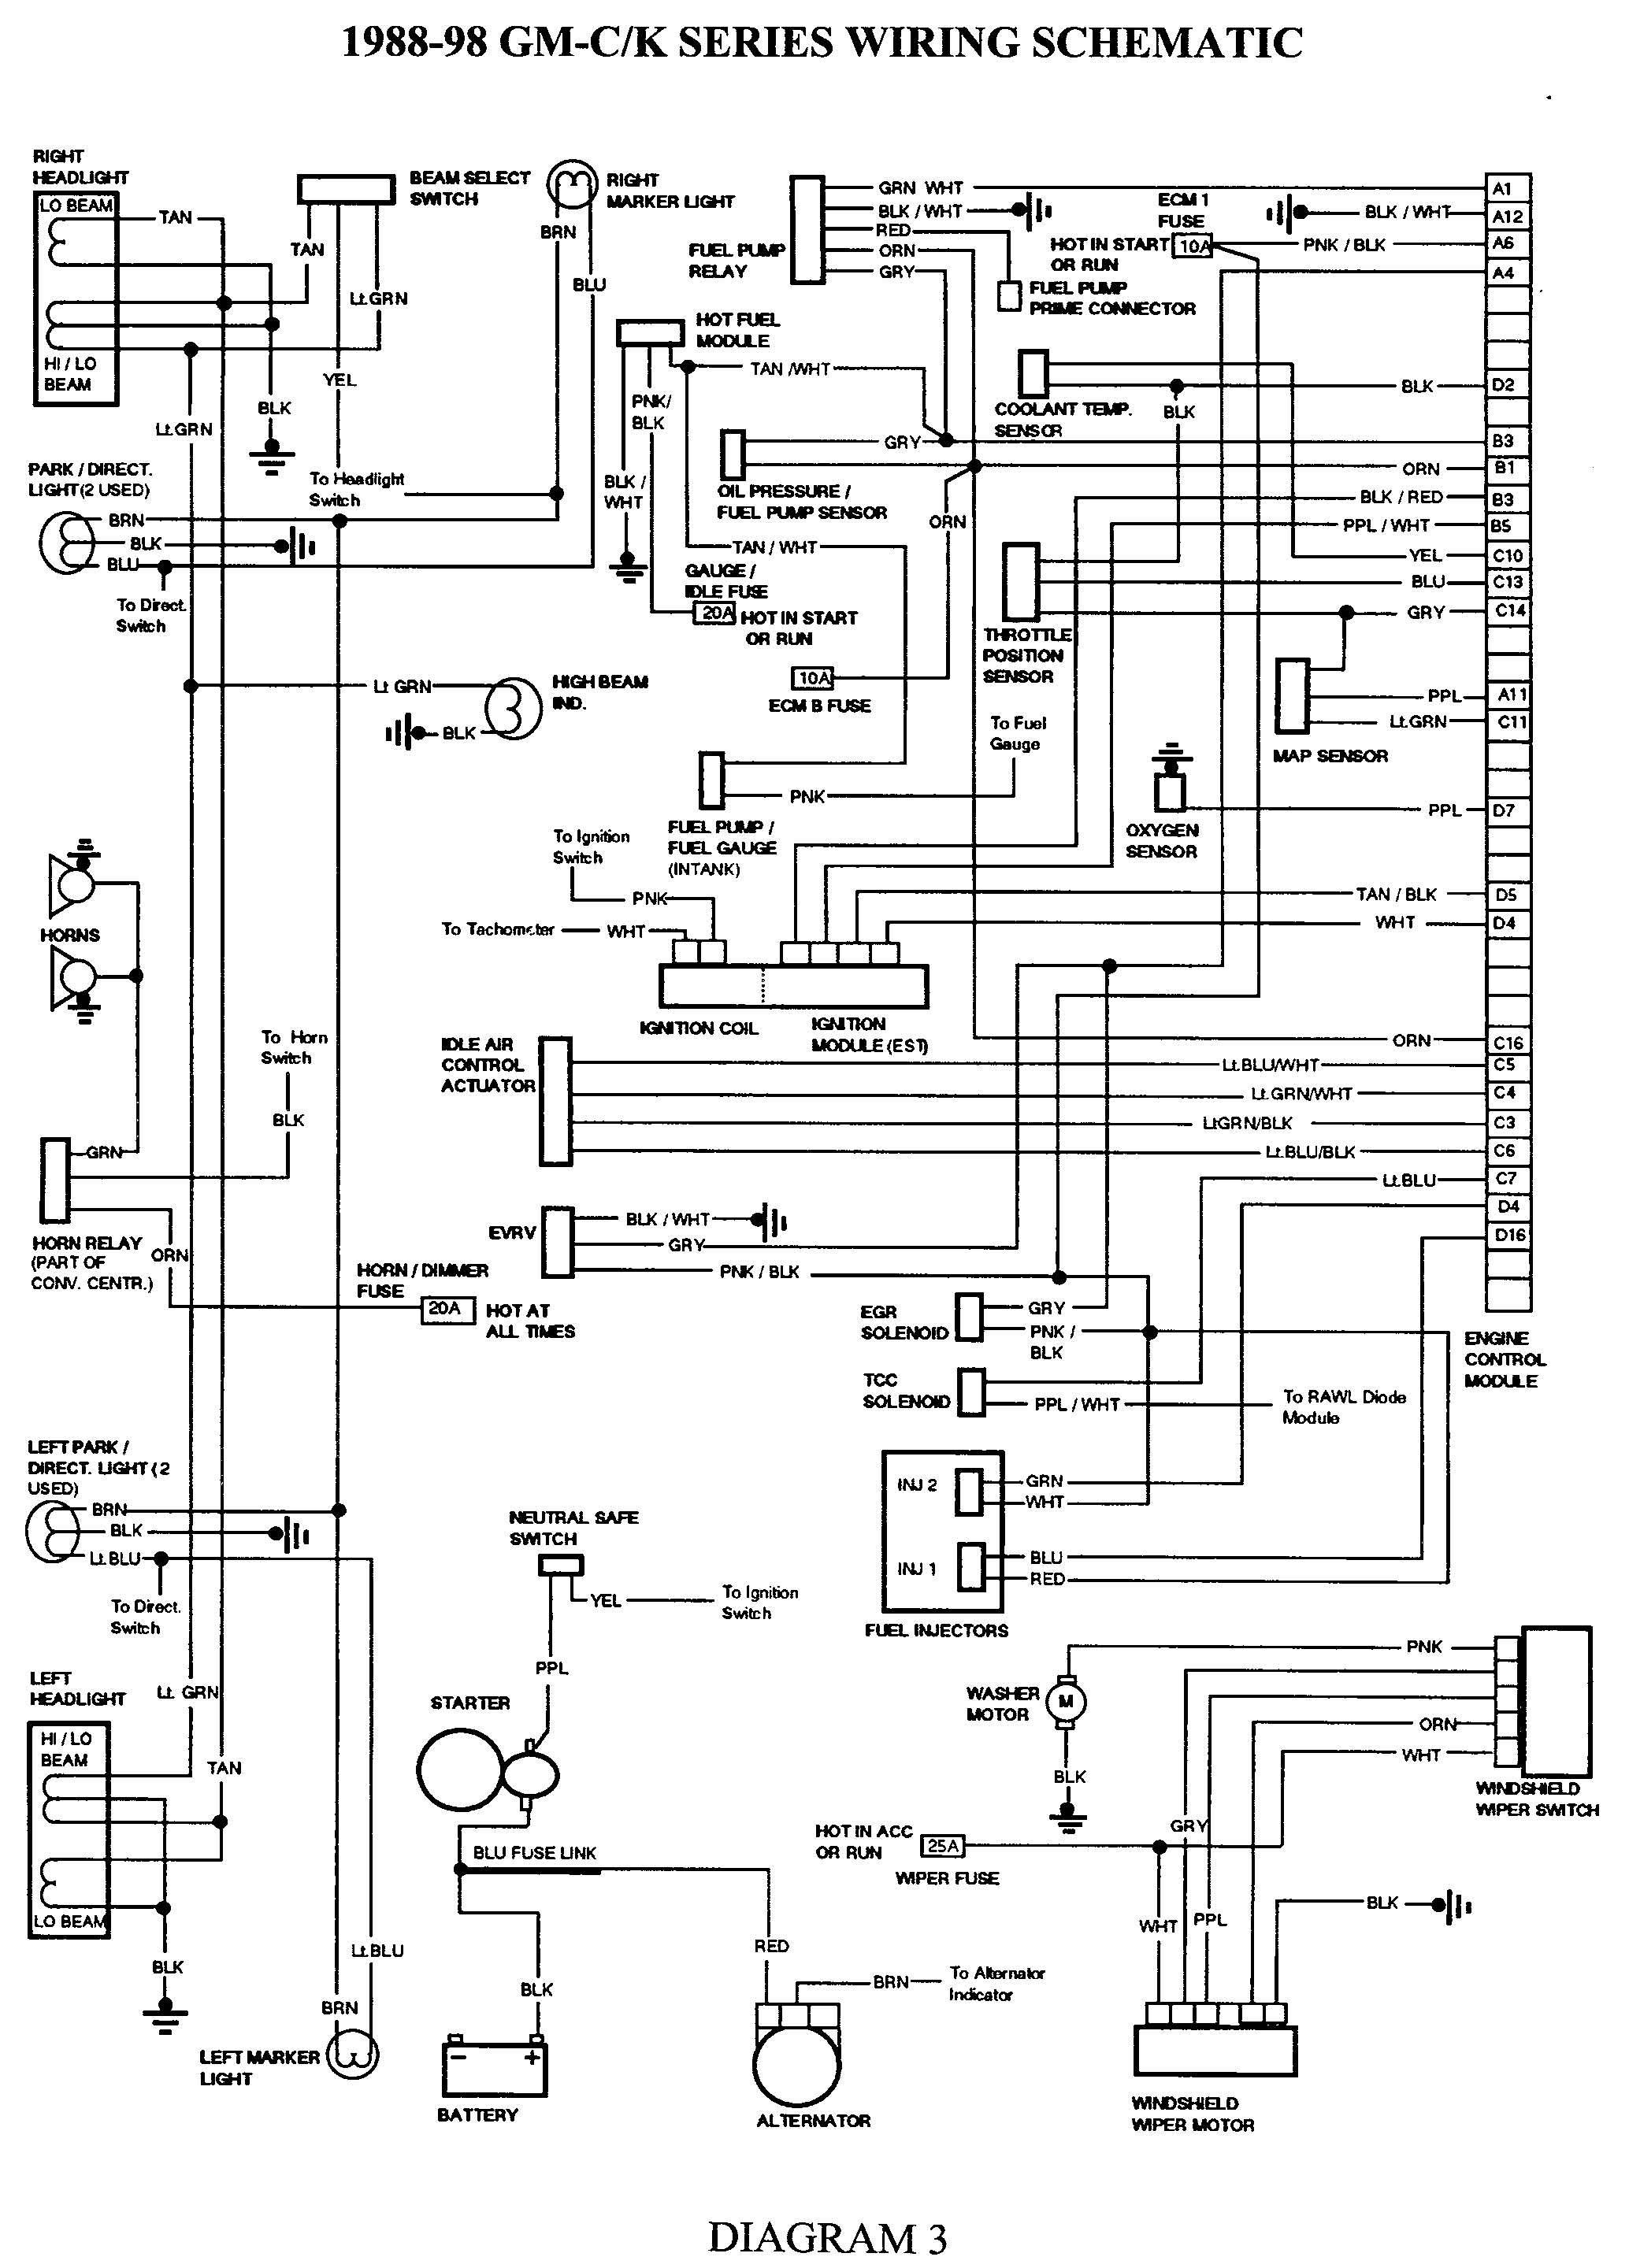 Wiring Diagram - bookingritzcarlton.info | Electrical diagram, Electrical  wiring diagram, Chevy 1500 | 1993 Chevy Headlight Wiring Diagram |  | Pinterest